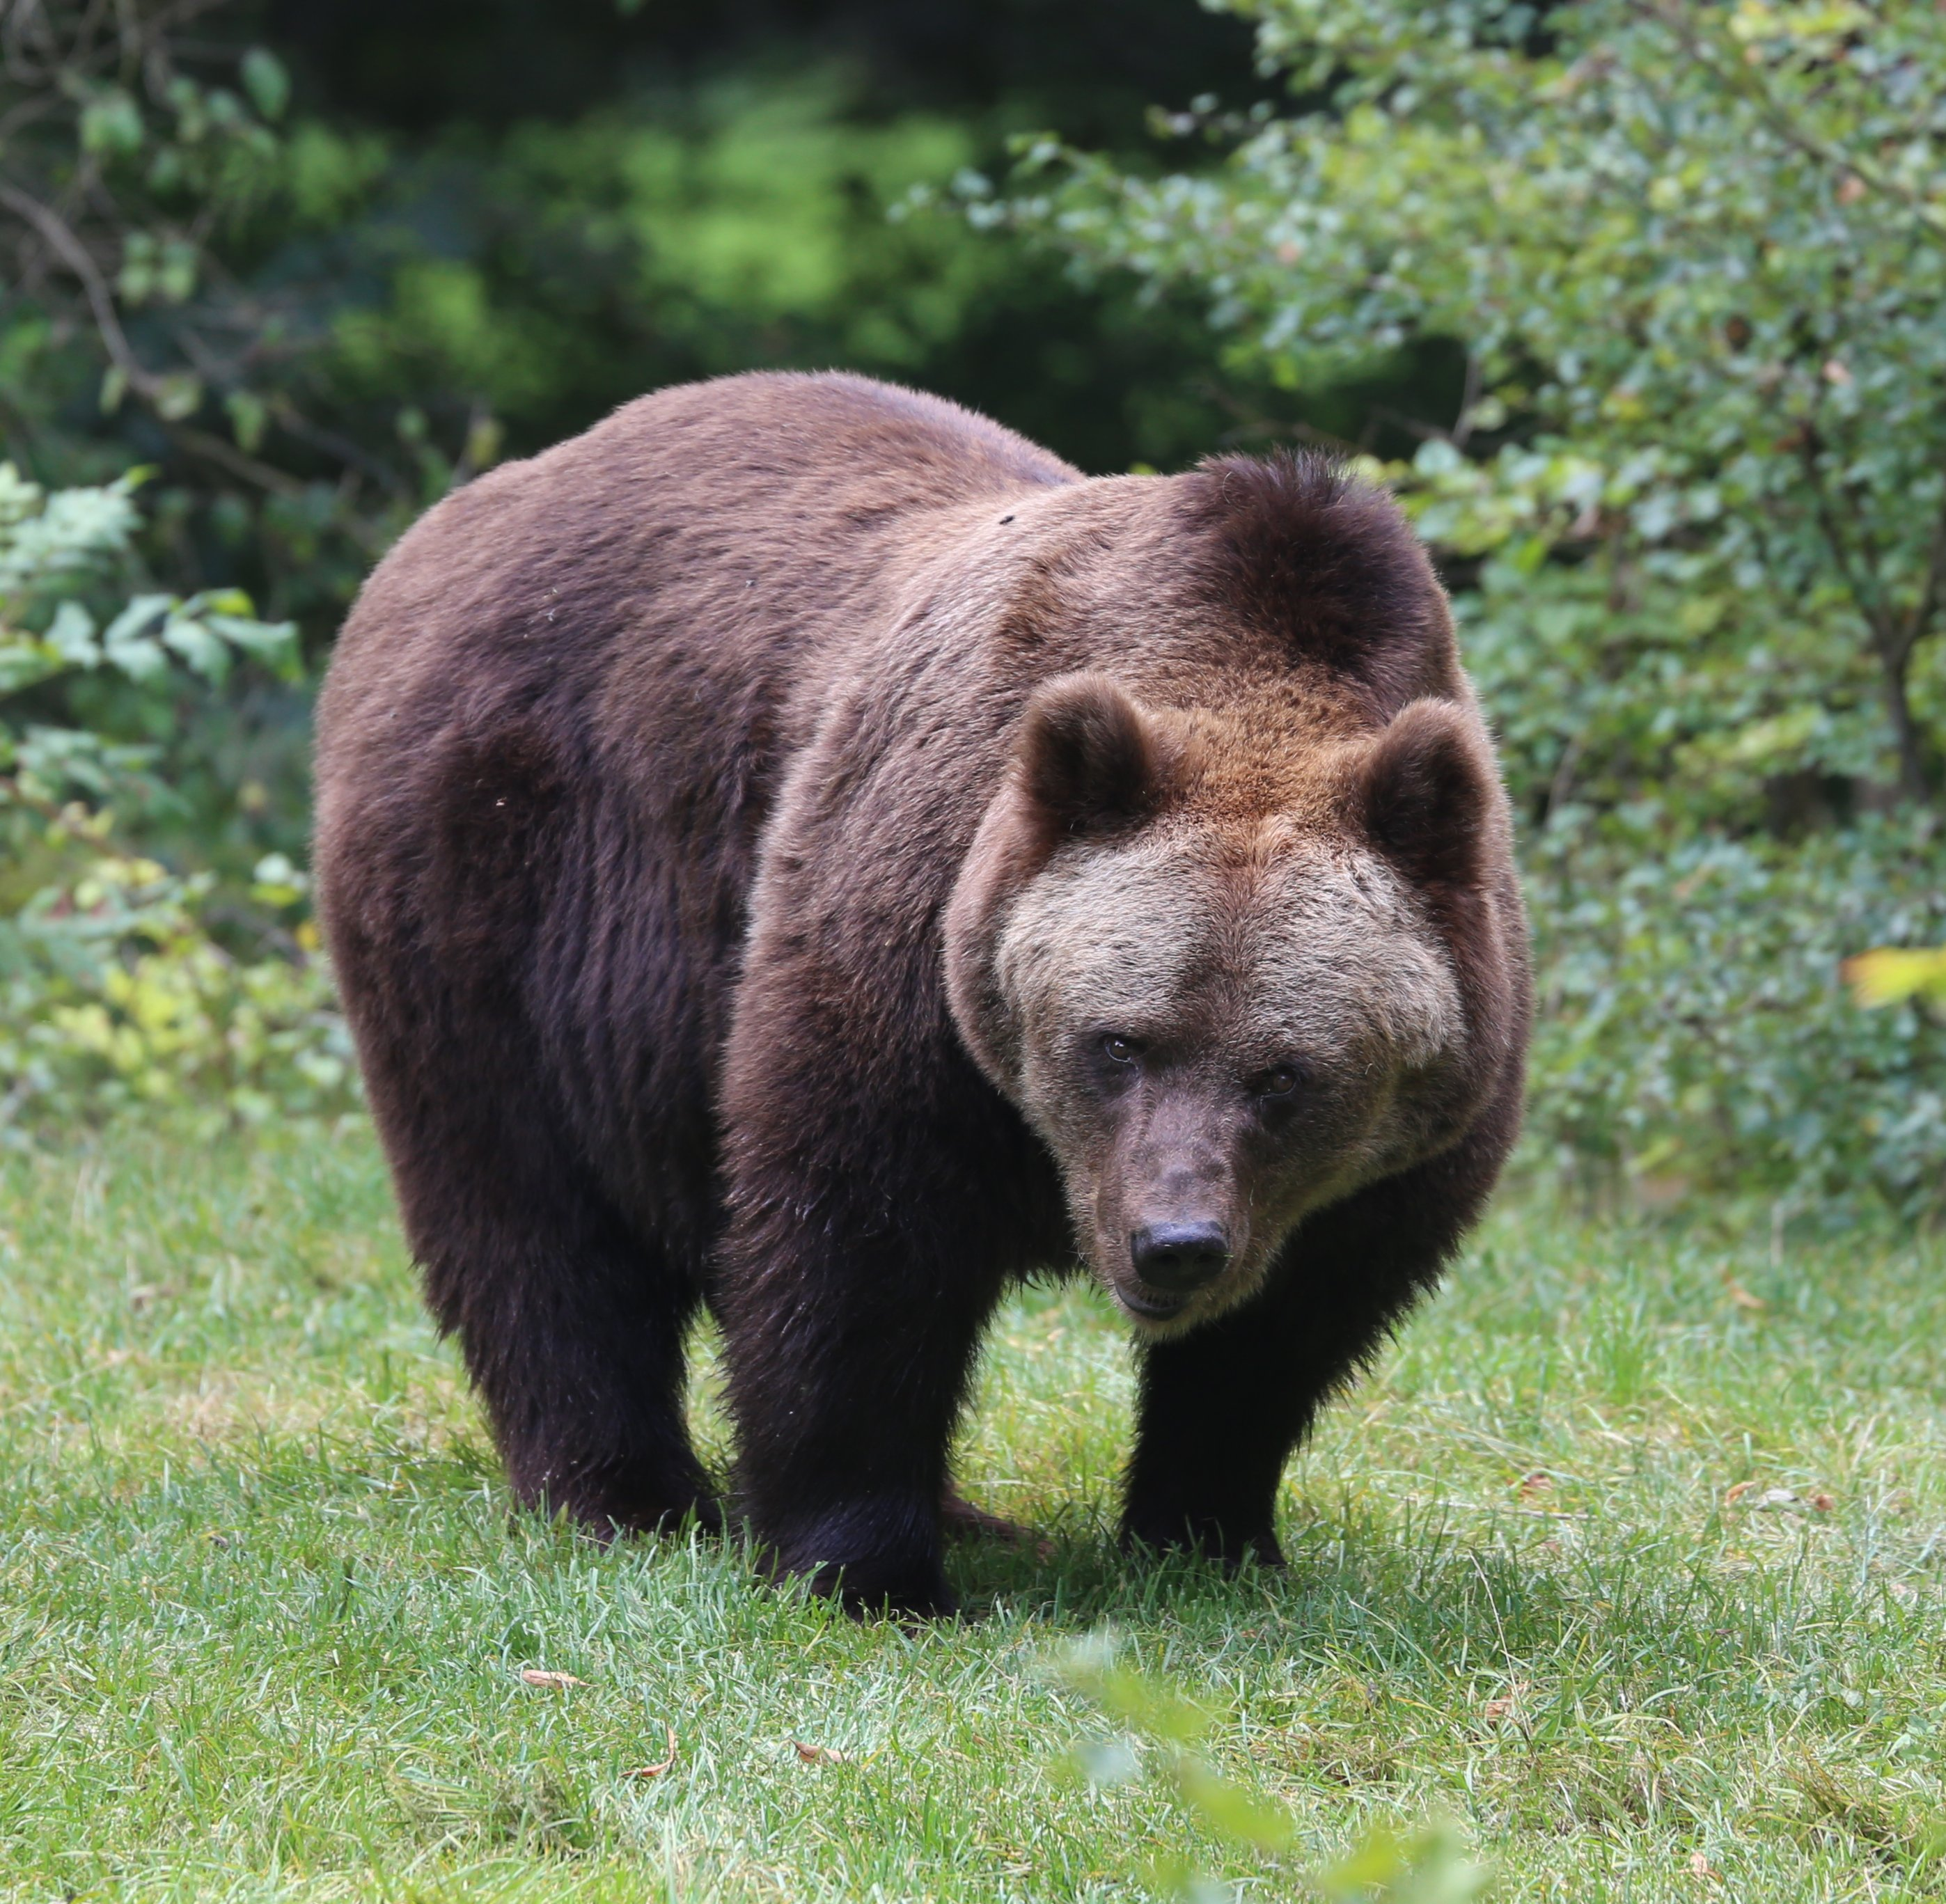 ALASKAN attacked by BROWN BEAR while on walk in woods ...